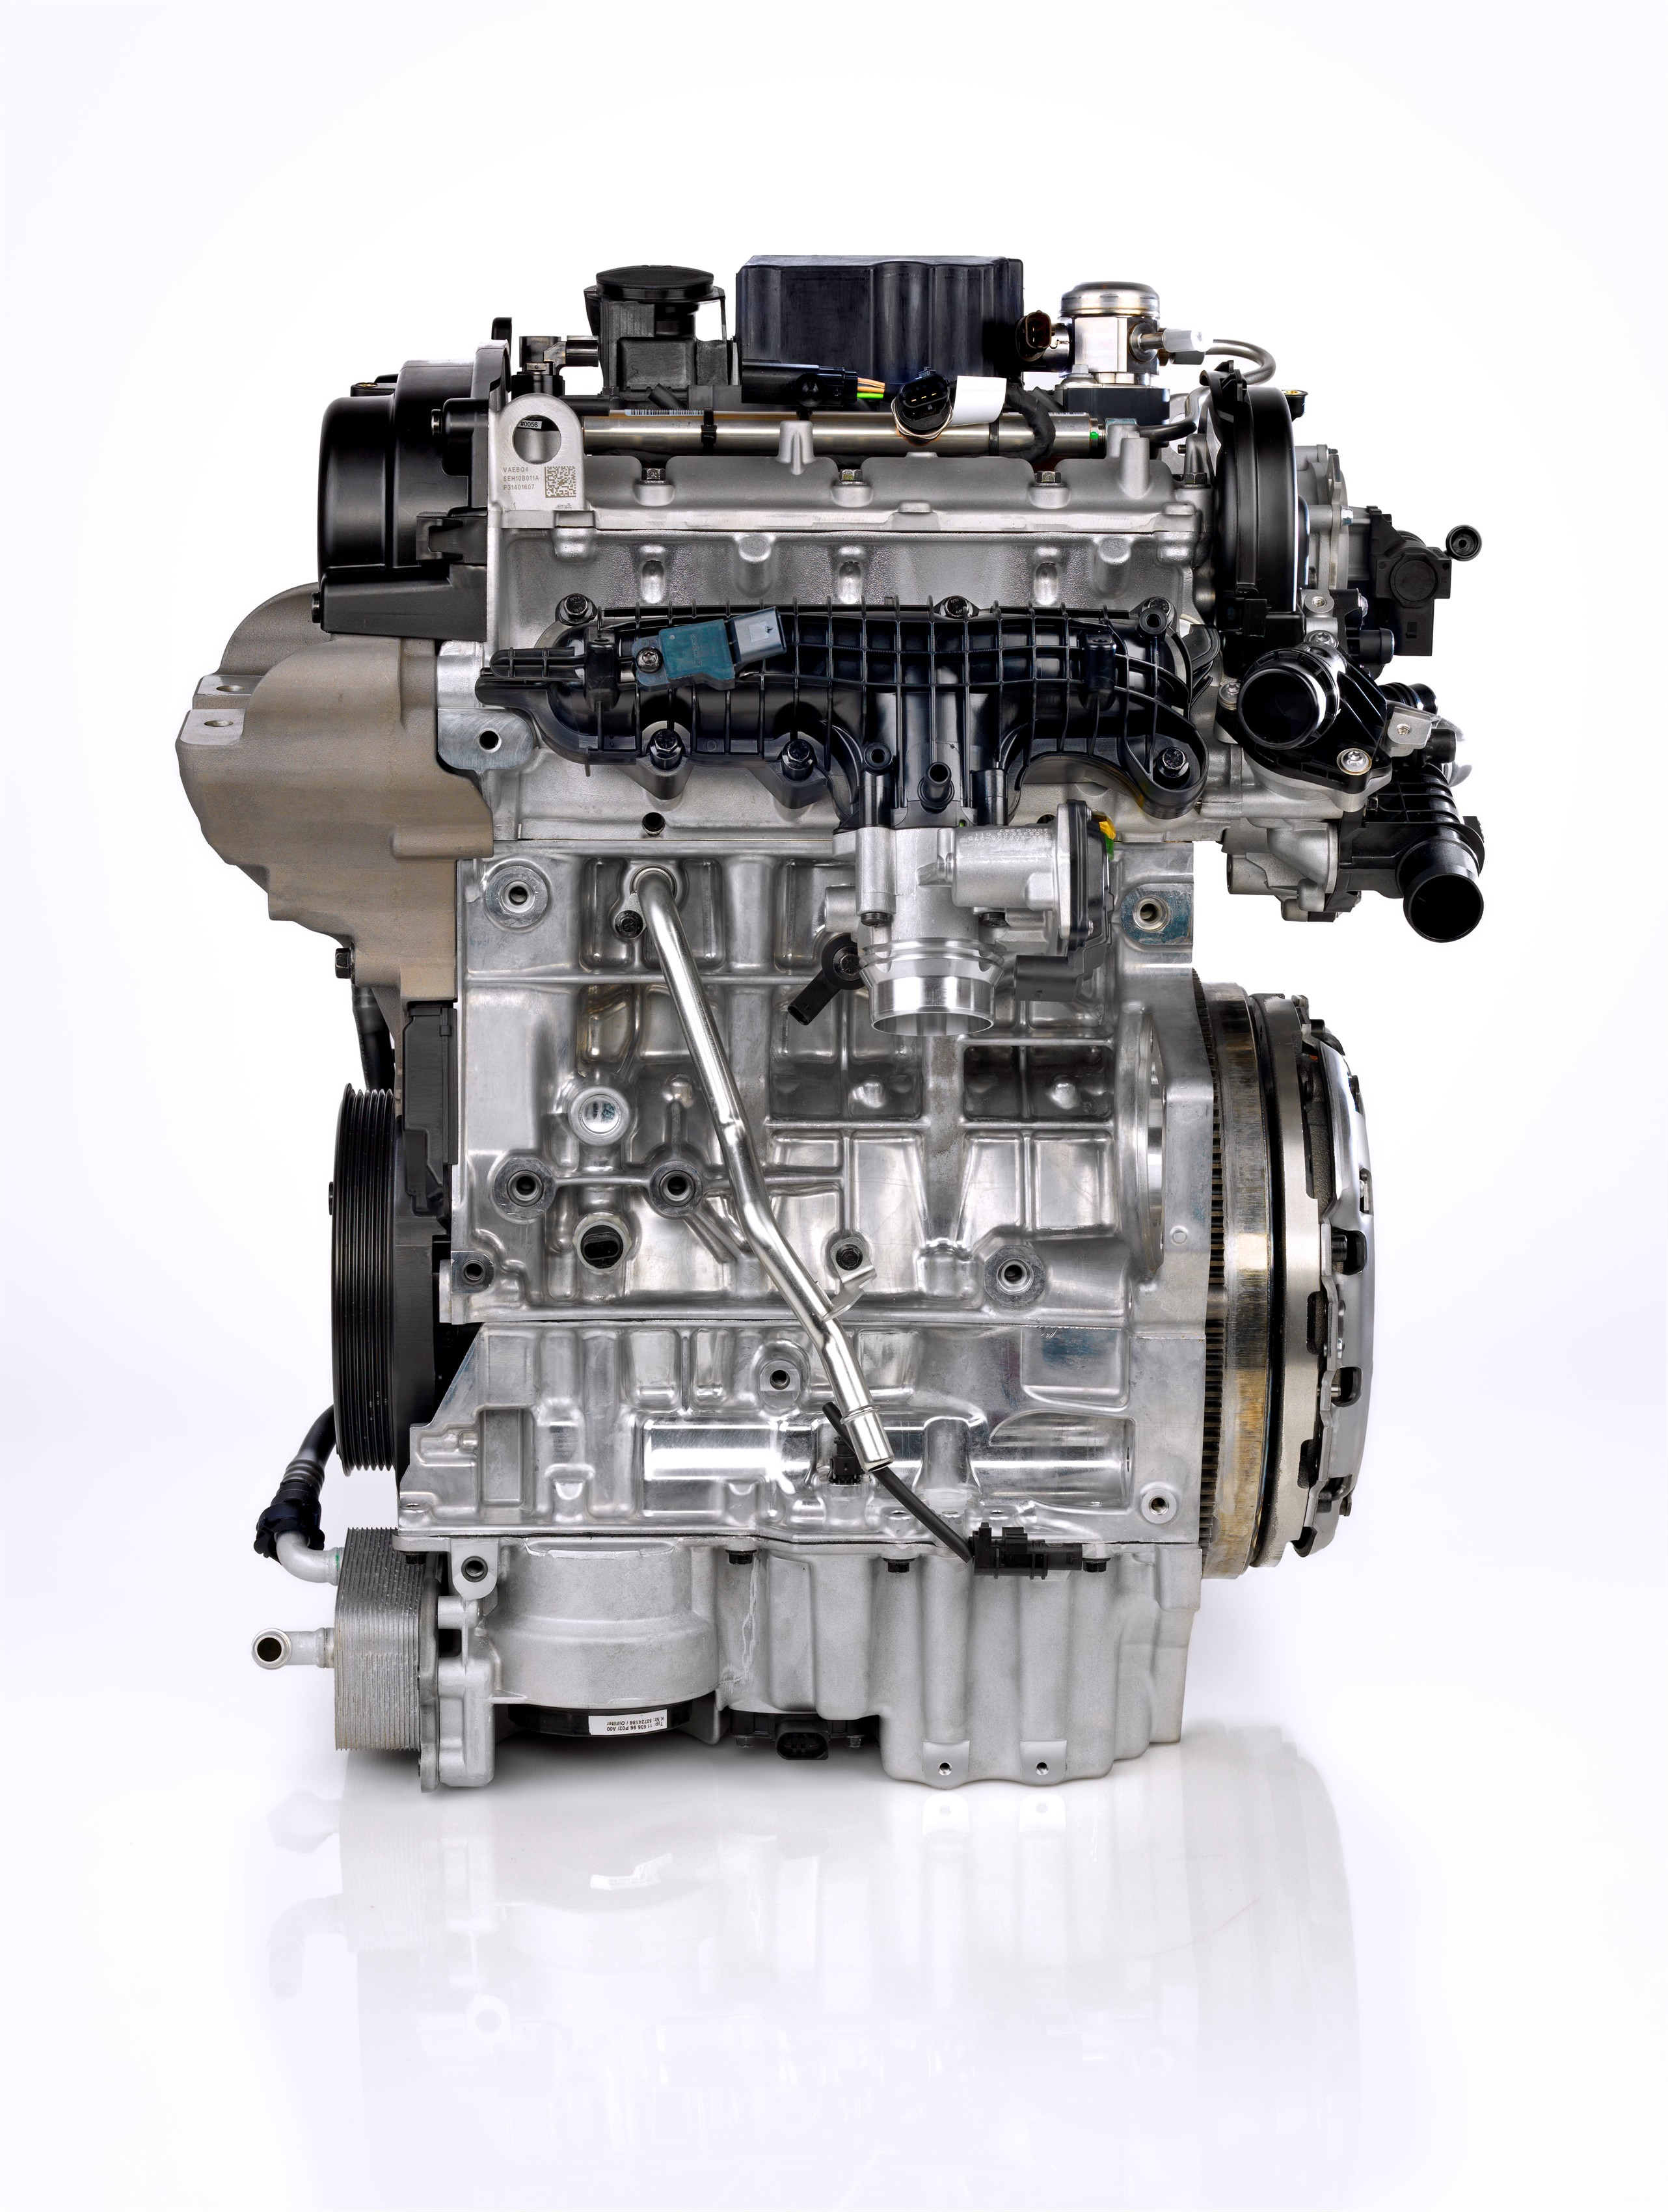 Volvo 1 5 Drive E 3 Cylinder Teased To Produce Up To 180